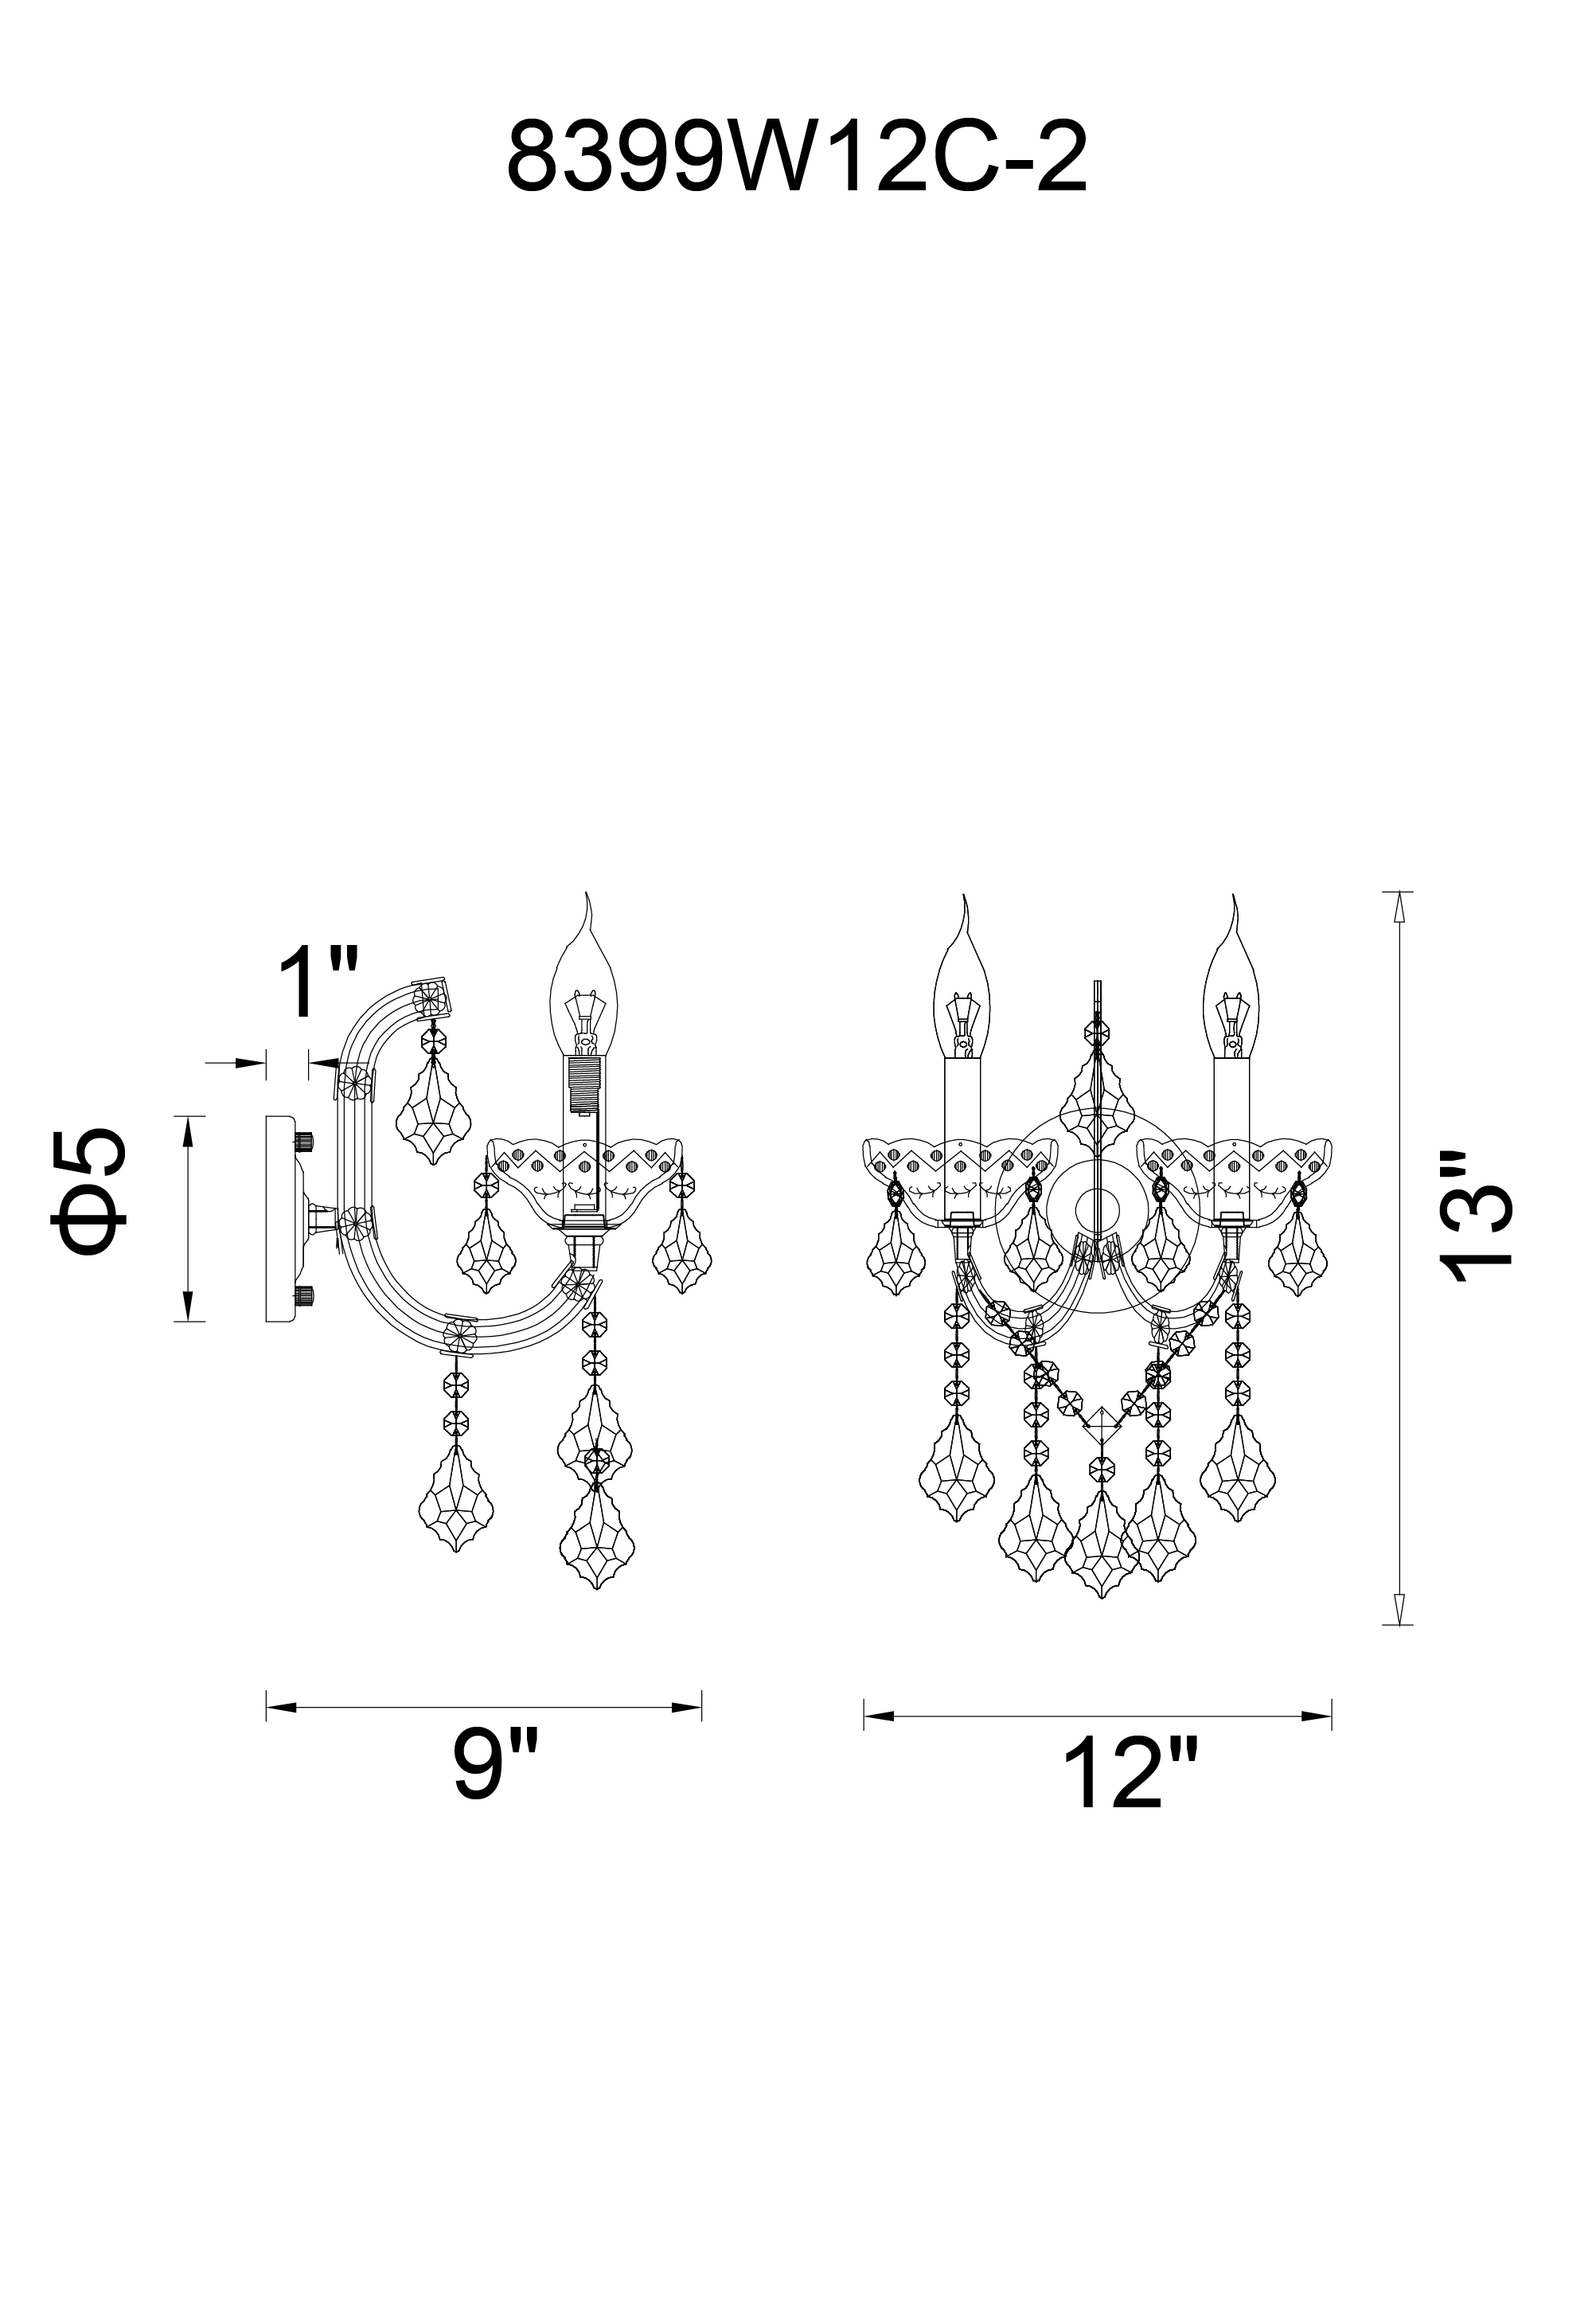 CWI Lighting Riley 2 Light Wall Sconce With Chrome Finish Model: 8399W12C-2 (CLEAR) Line Drawing